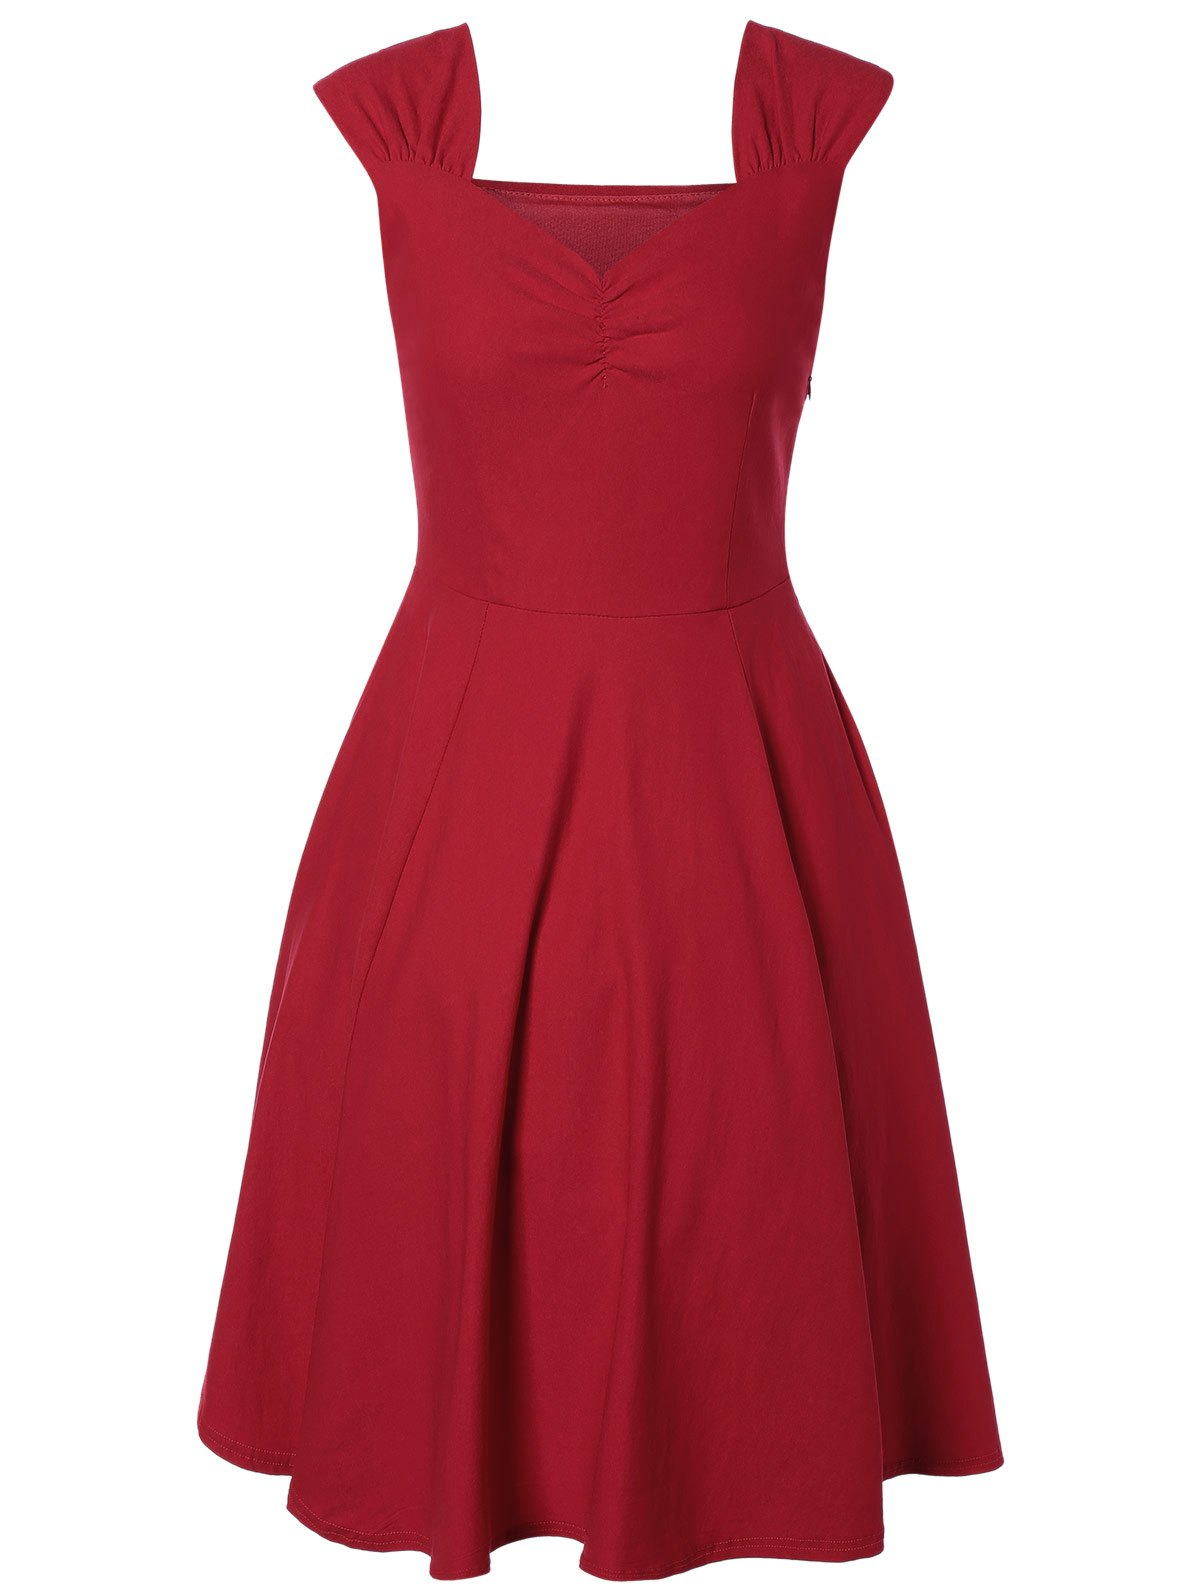 Stylish Sweetheart Neck Solid Color Pleated Knee-Length Dress